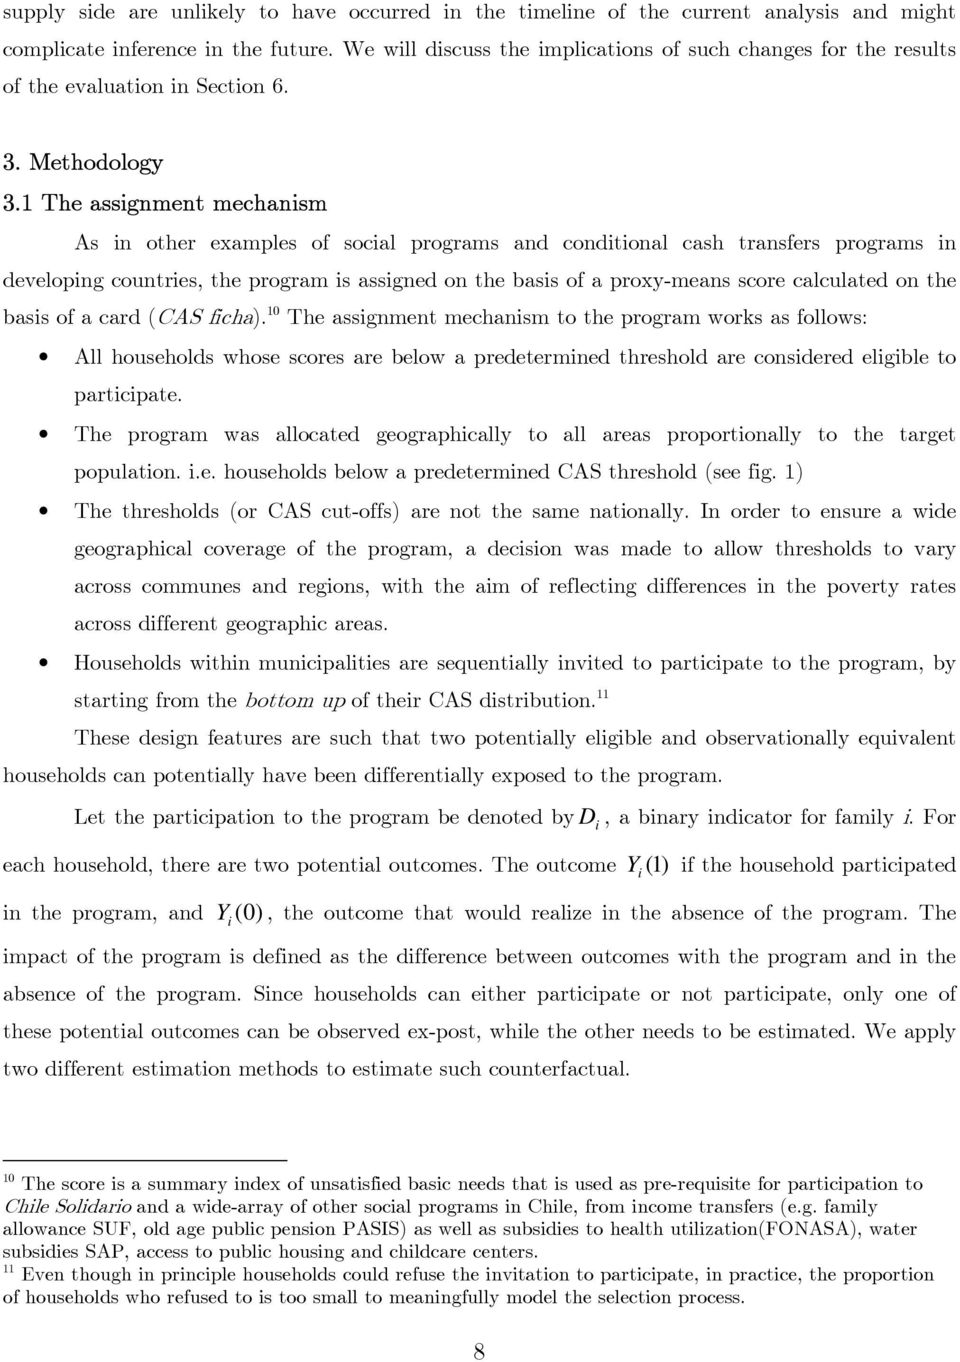 1 The assignment mechanism As in other examples of social programs and conditional cash transfers programs in developing countries, the program is assigned on the basis of a proxy-means score